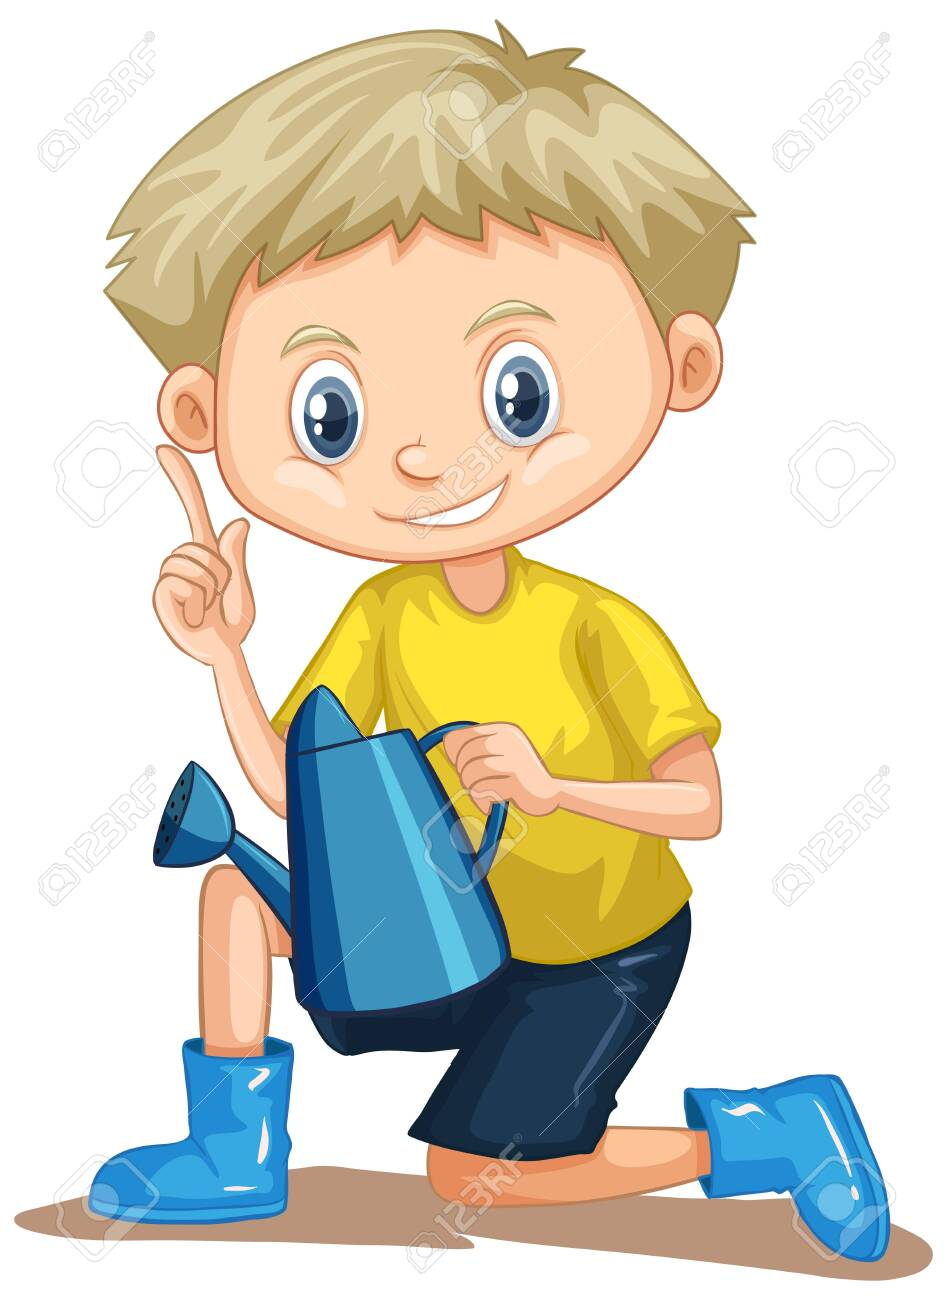 Boy in yellow shirt with watering can illustration - 142205629